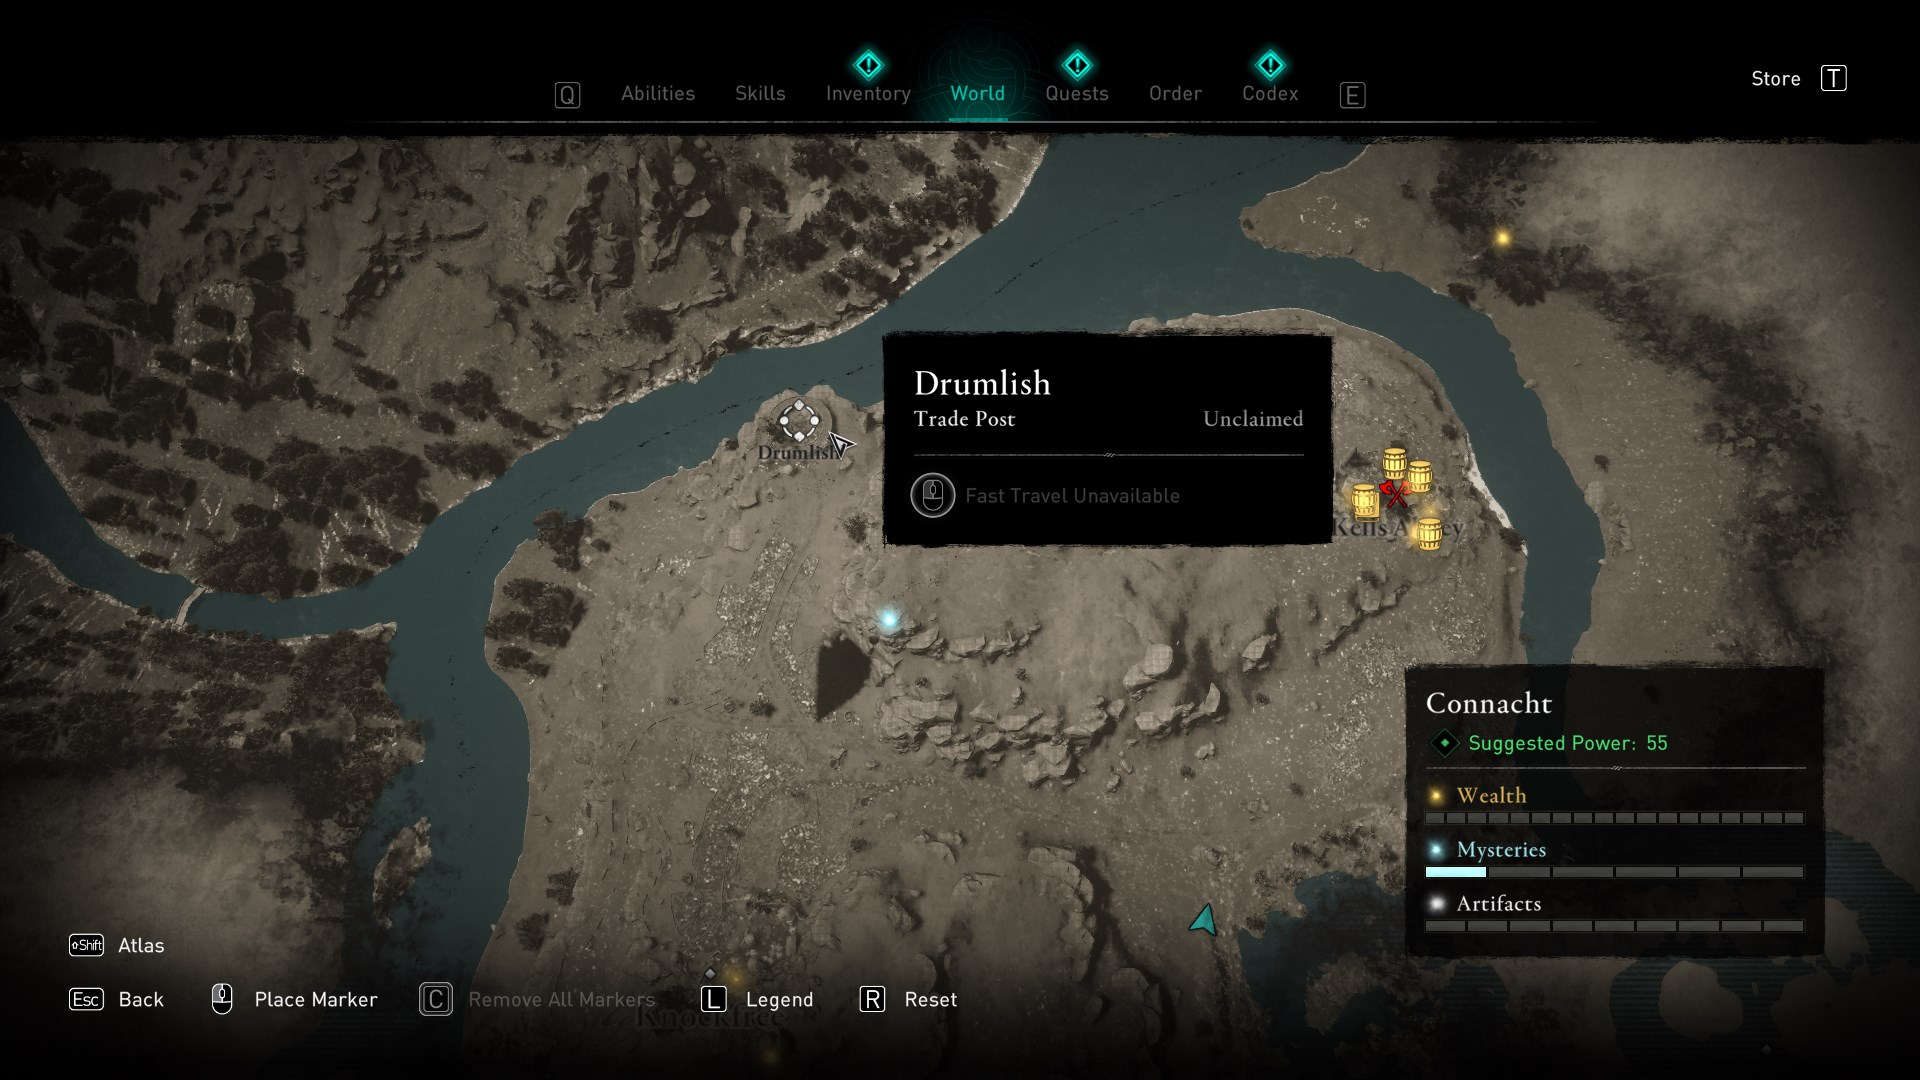 Assassins Creed Valhalla Wrath of the Druids All Trade Post Locations